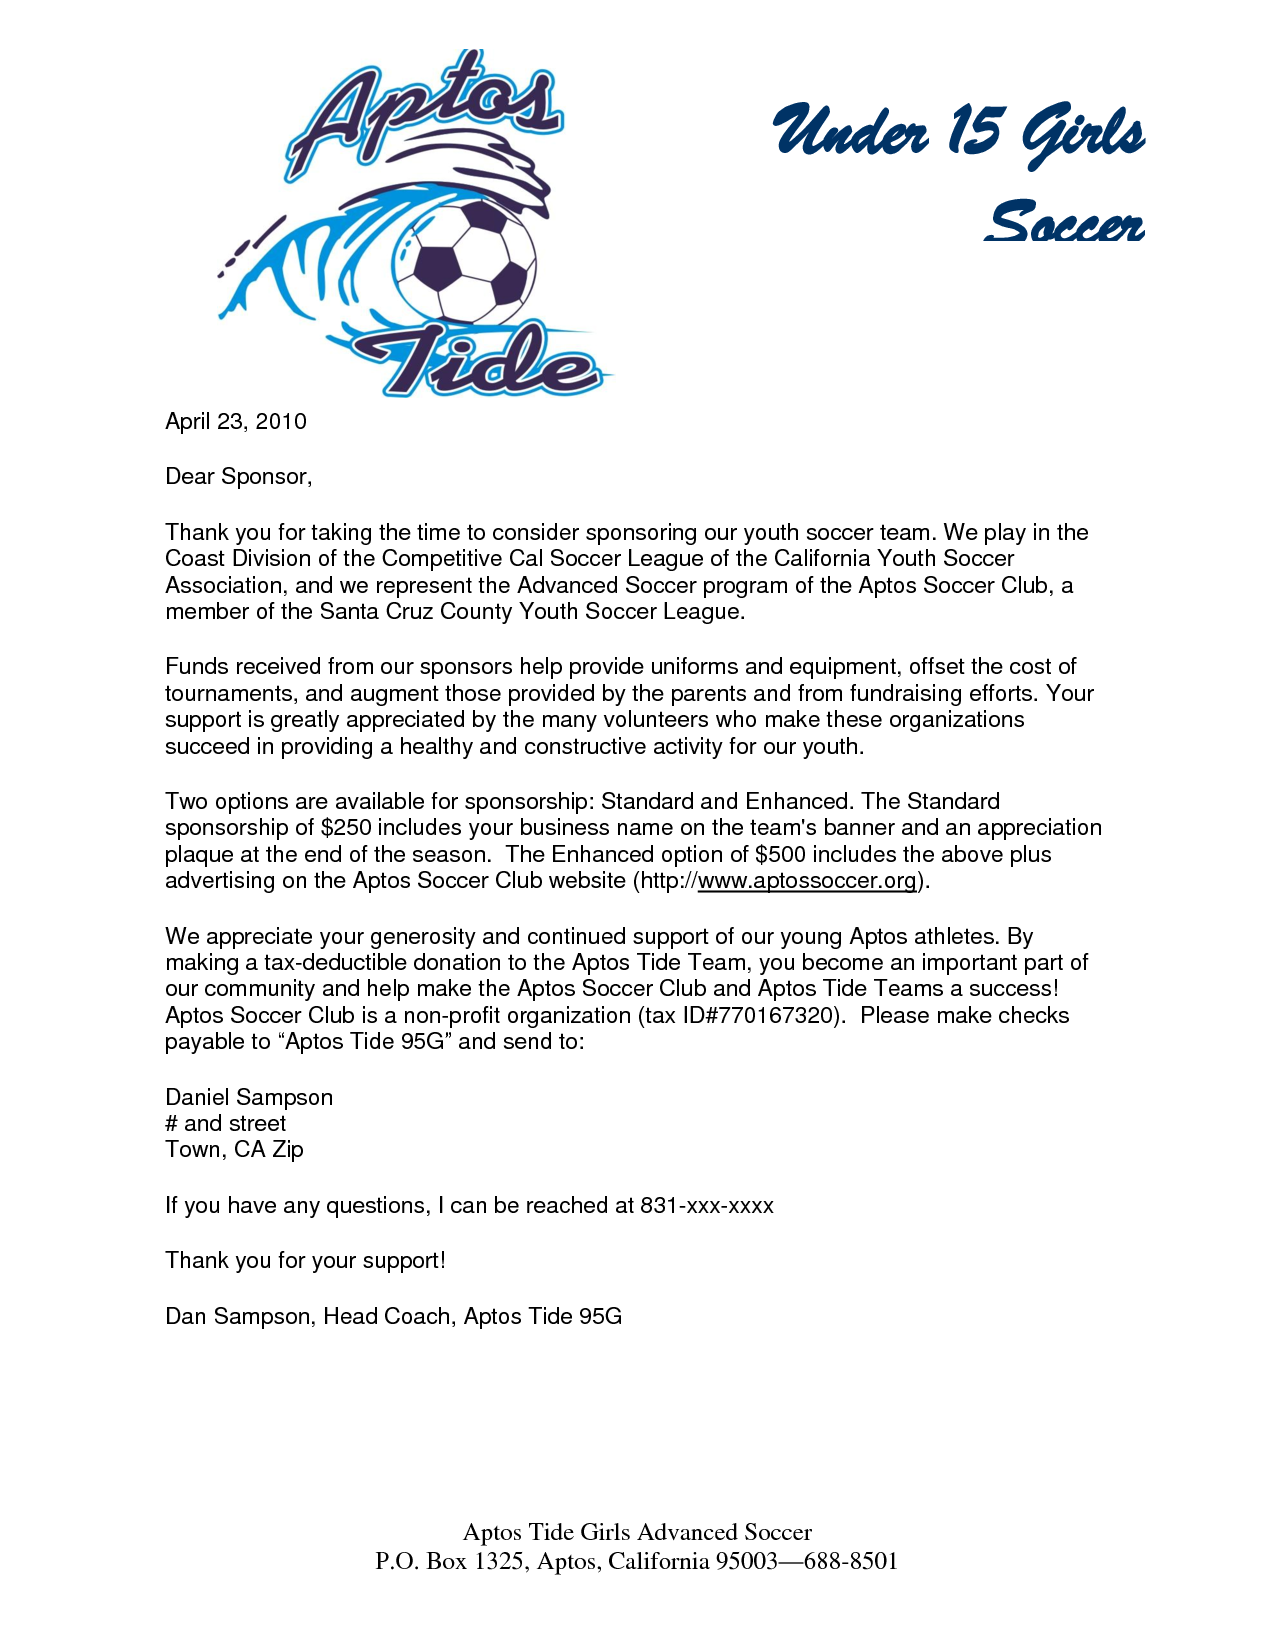 parent thank you letter from youth athletes – Template Letter for Sponsorship